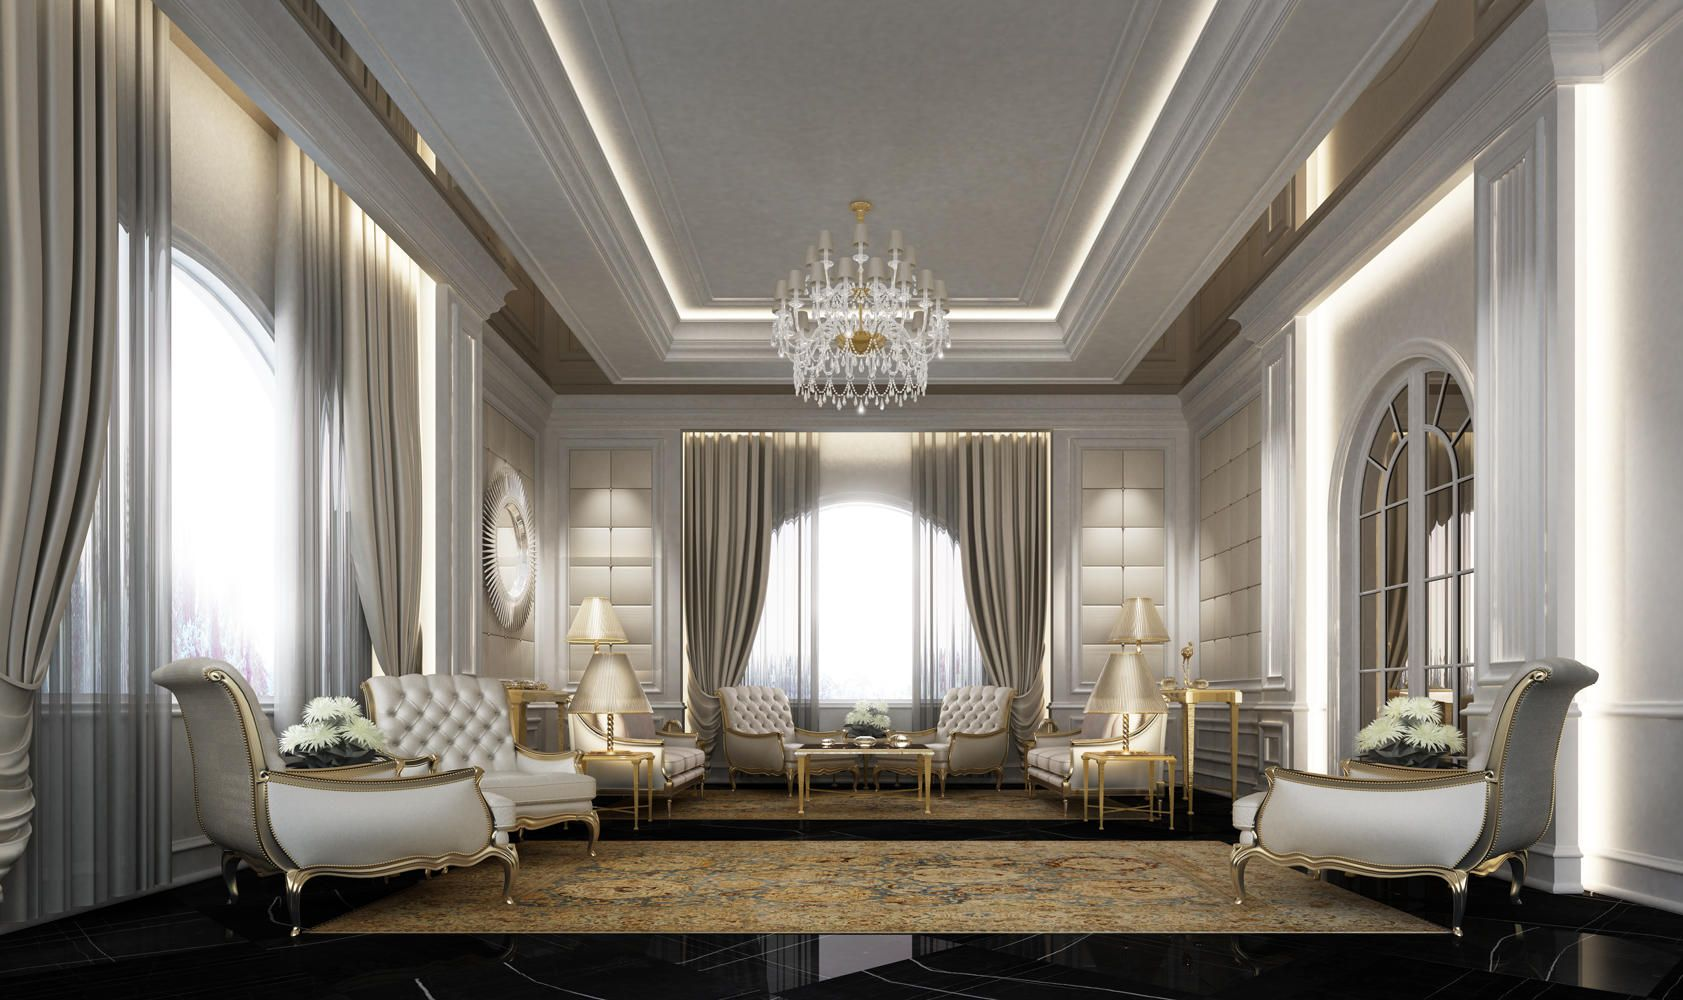 Arabic majlis designs ions design interior design for Interior decoration company